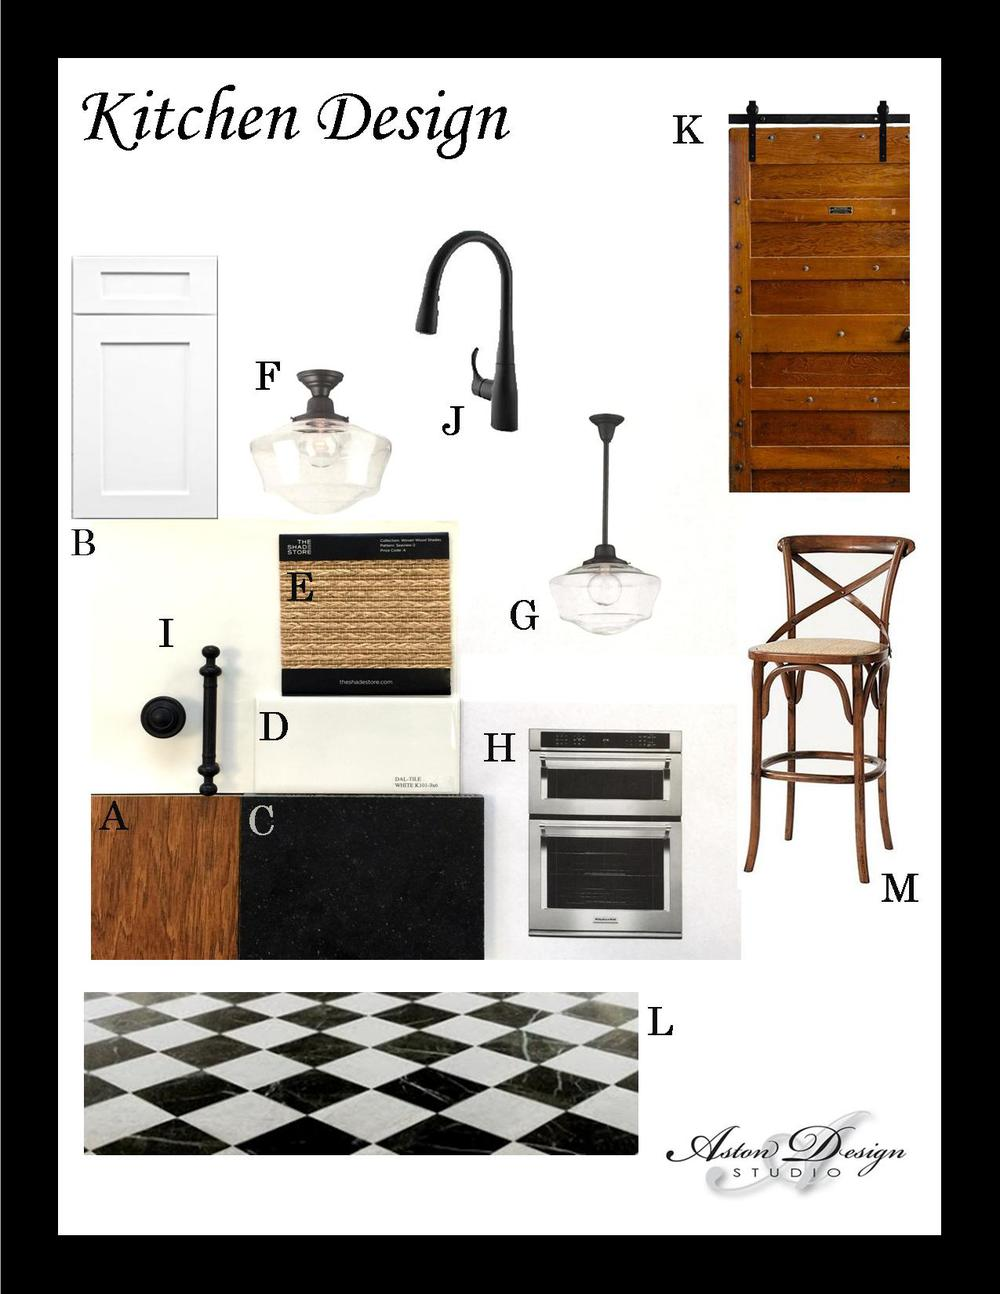 Kitchen design | Digital storyboard by interior designer Carla Aston